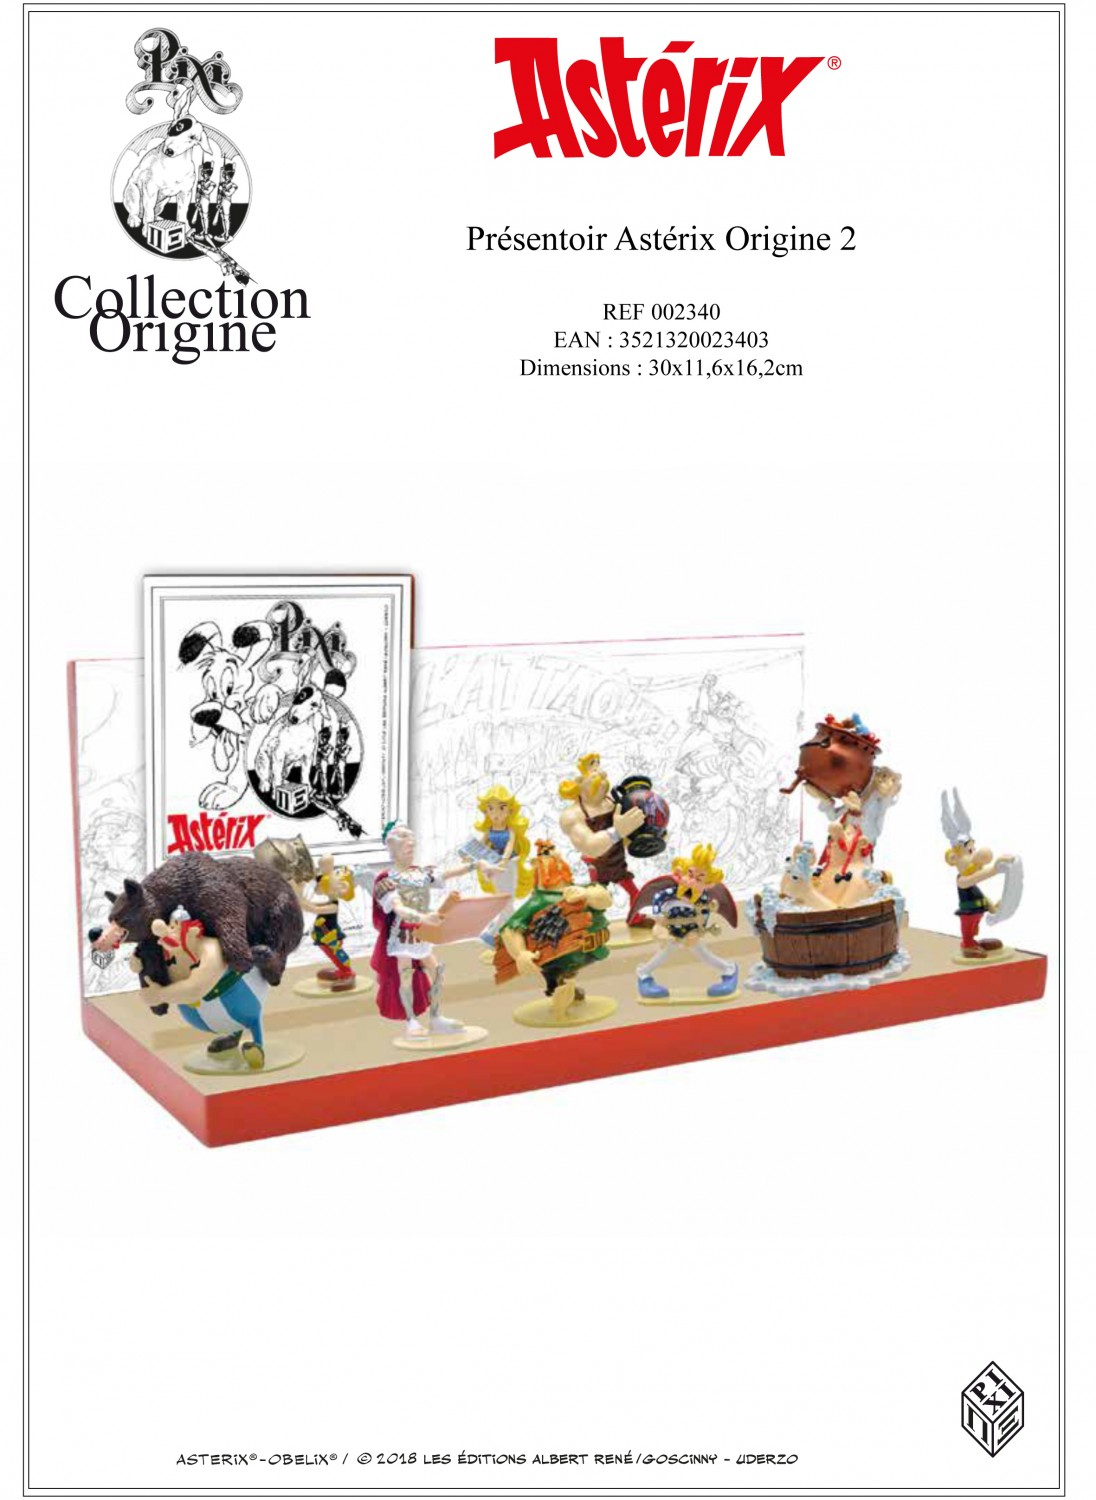 ASTERIX: COLLECTION ORIGINE  2 - ENSEMBLE DE 10 FIGURINES PIXI + PRÉSENTOIR